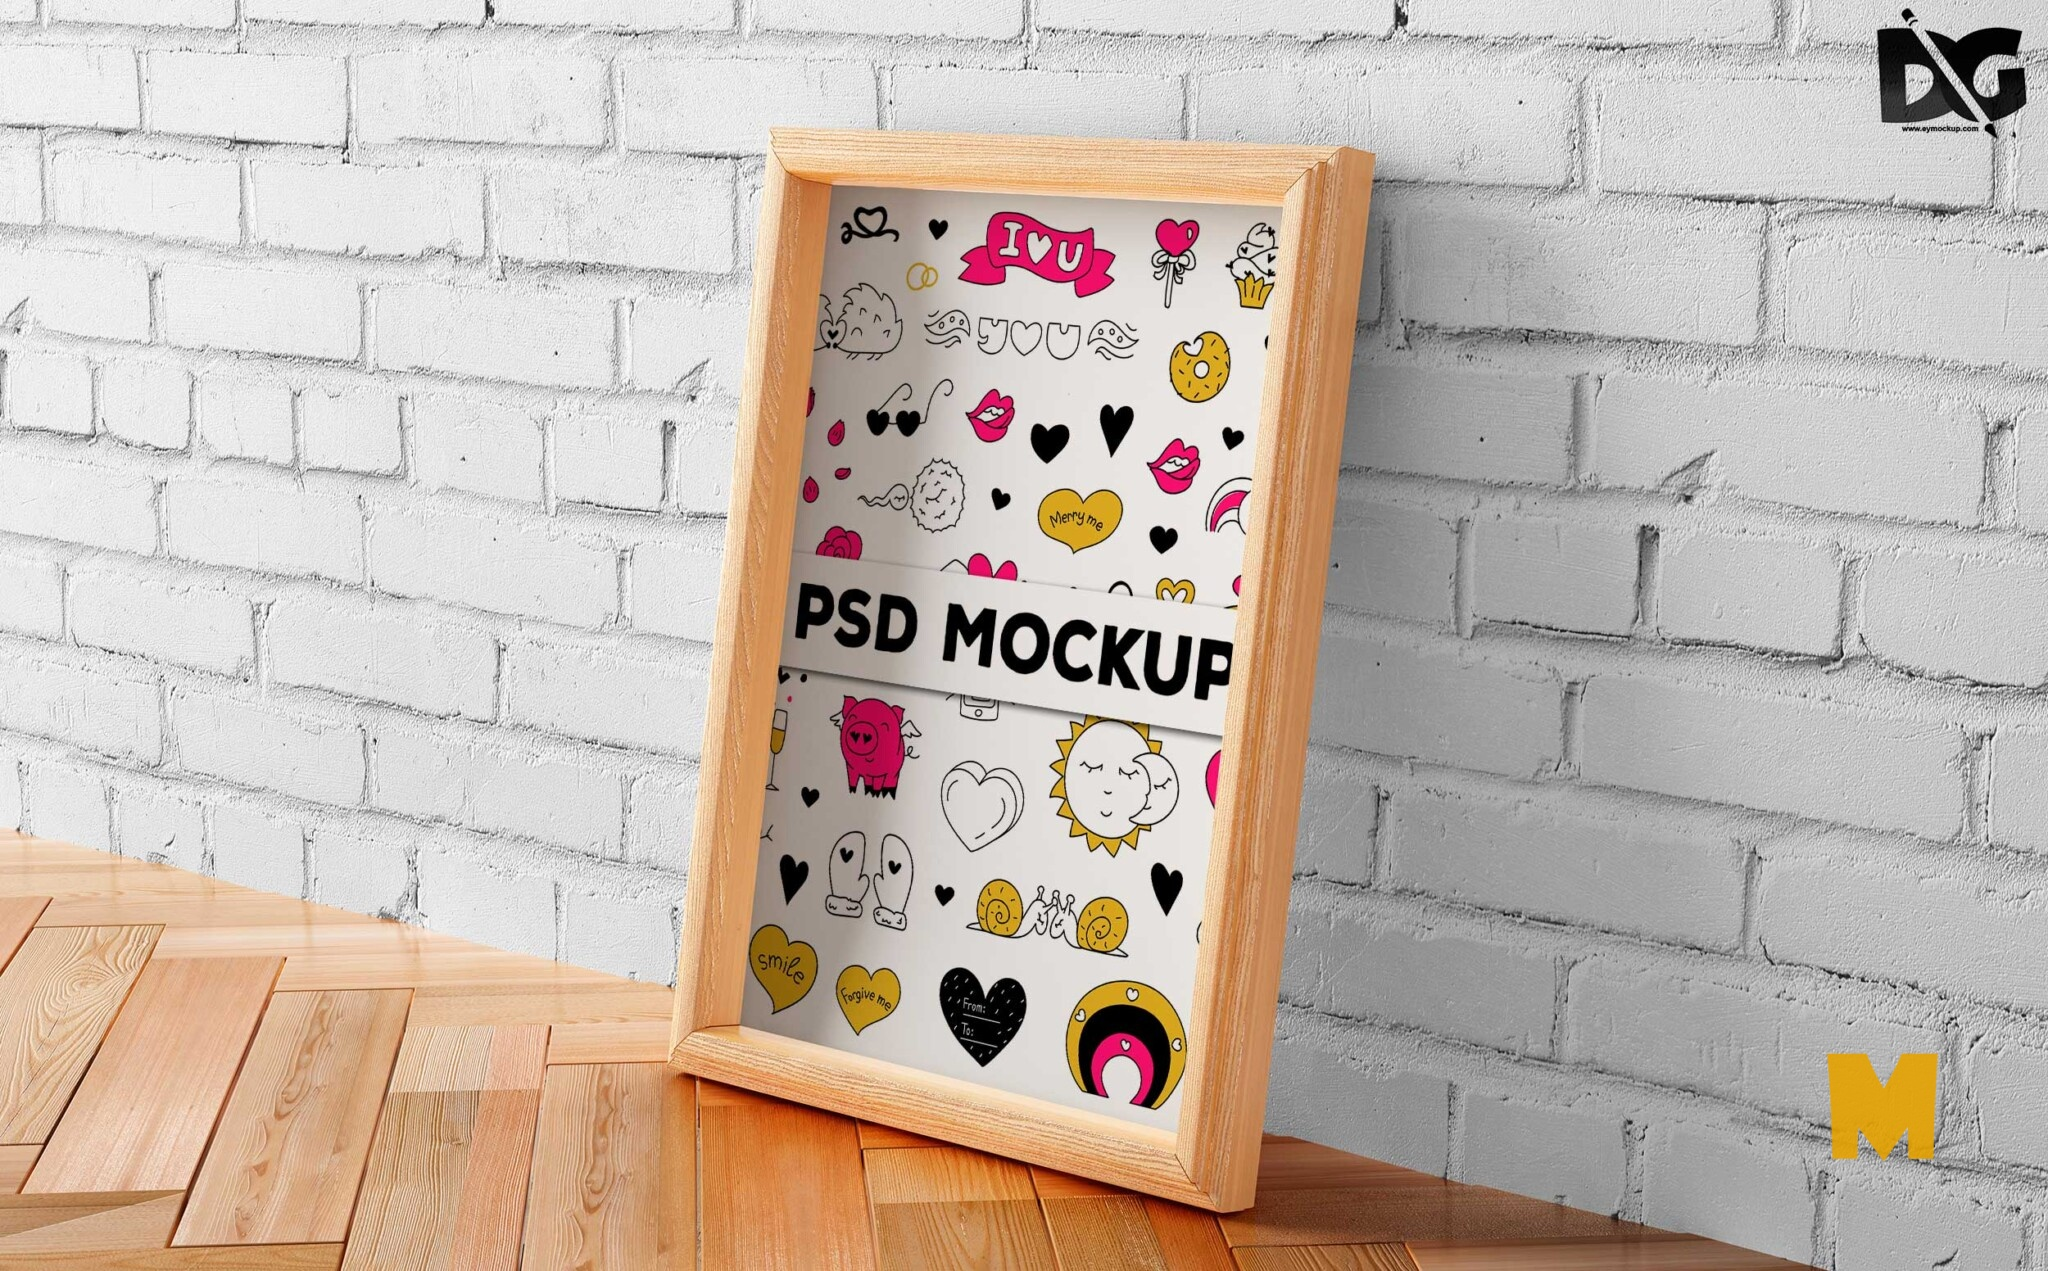 Artwork PSD Mockup